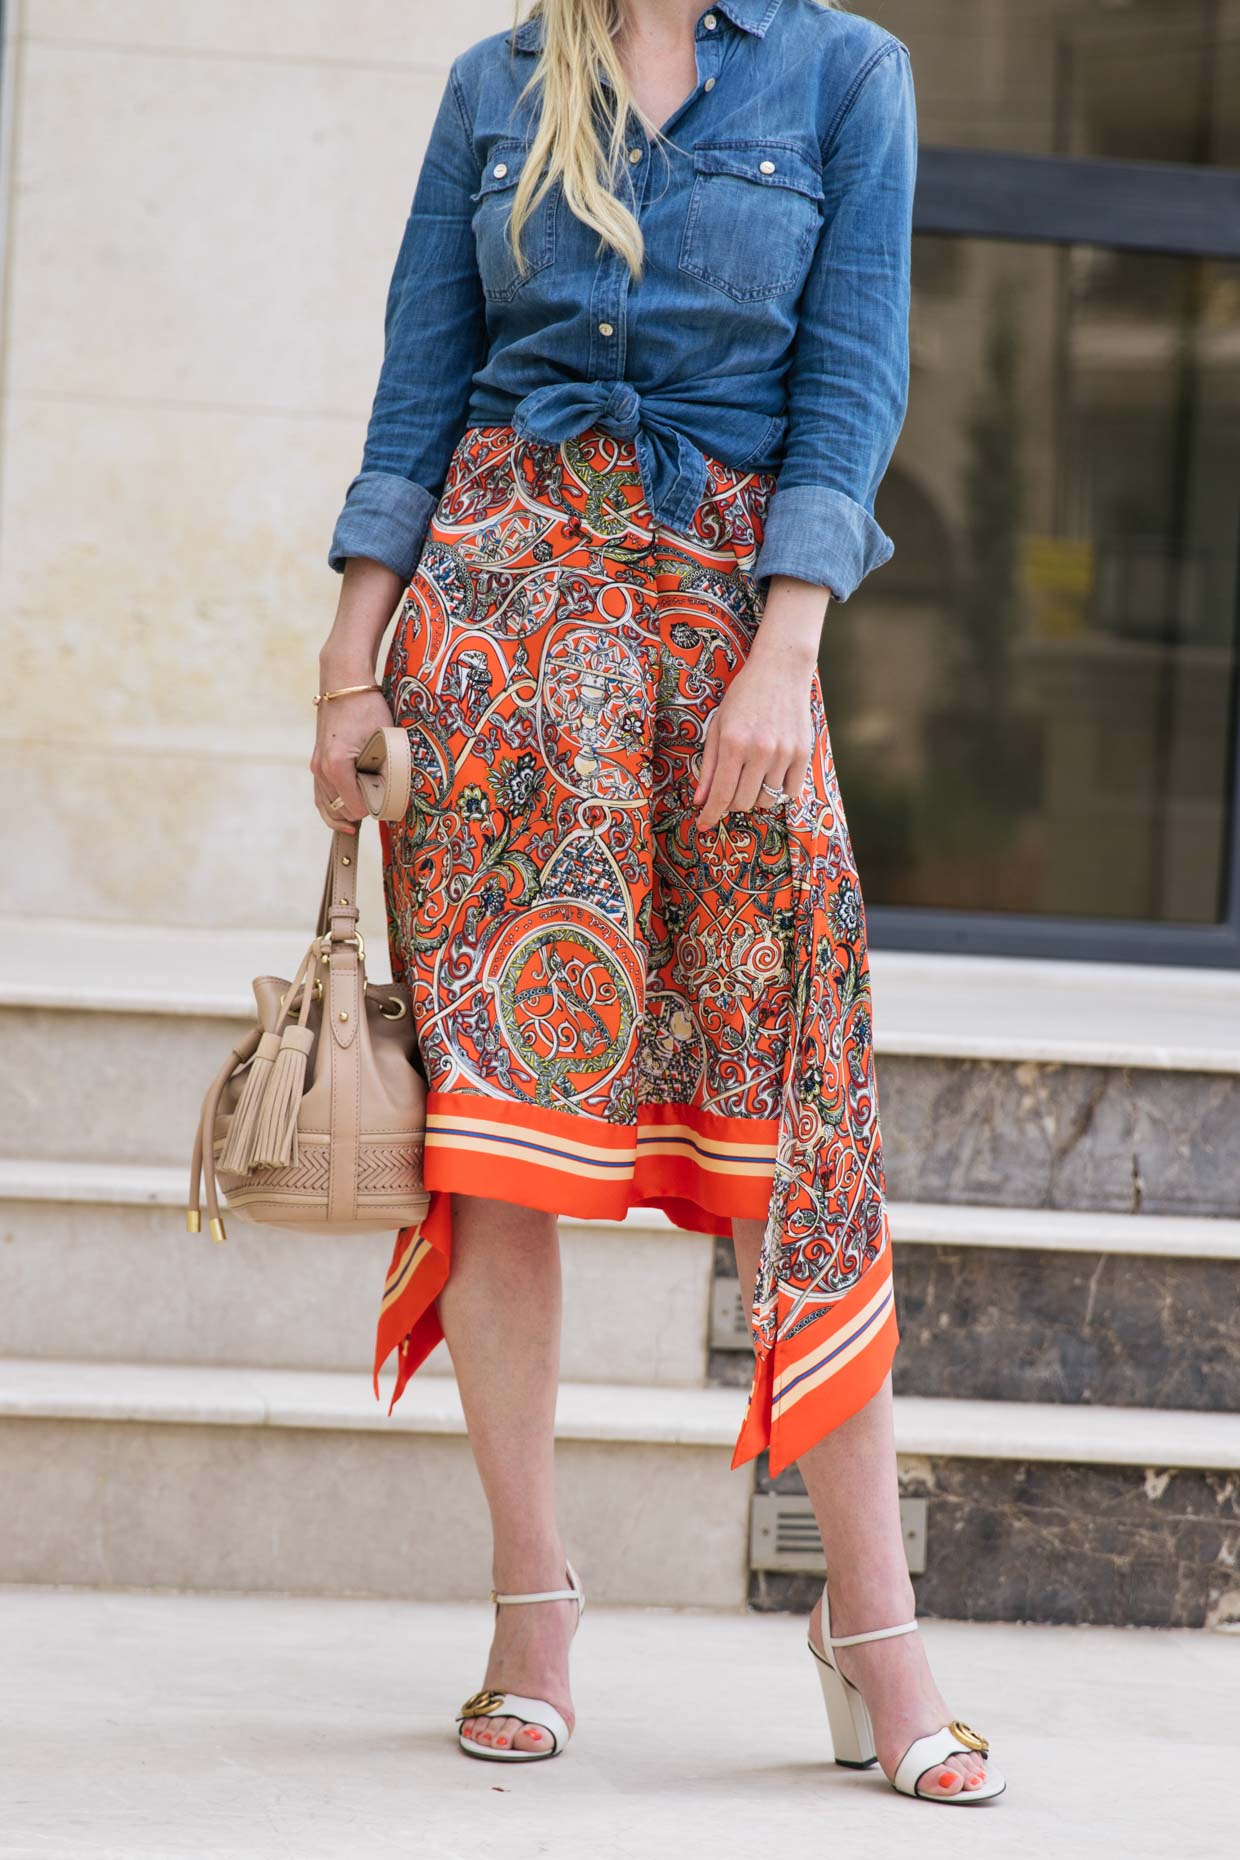 95403f8e3 Summer outfit idea with denim shirt tied at the waist, printed silk skirt  and Gucci block heel sandals